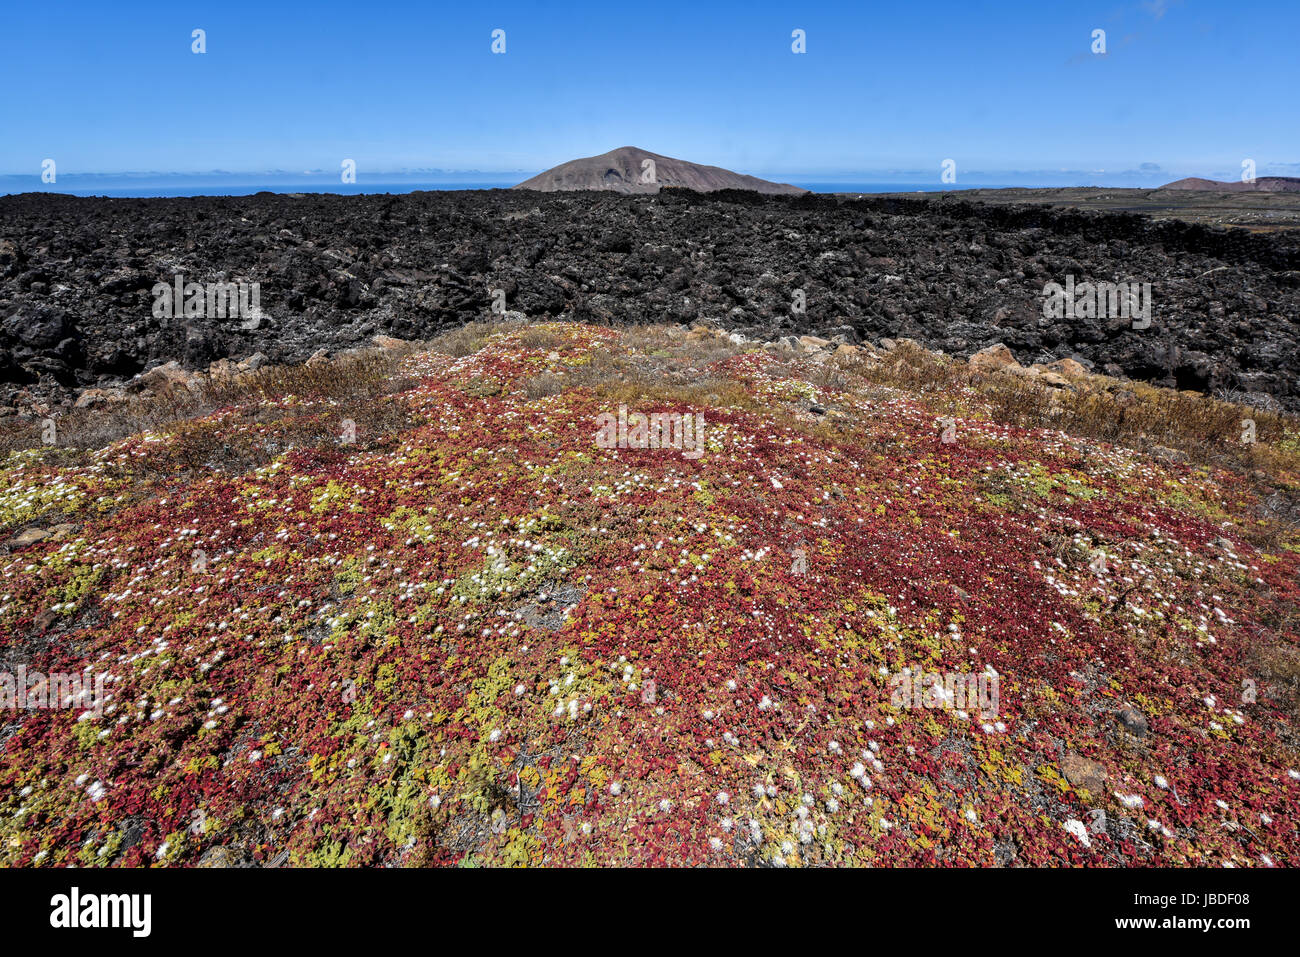 Flowery vegetation in the unique lava landscape of Timanfaya National Part. Lanzarote, Spain - Stock Image